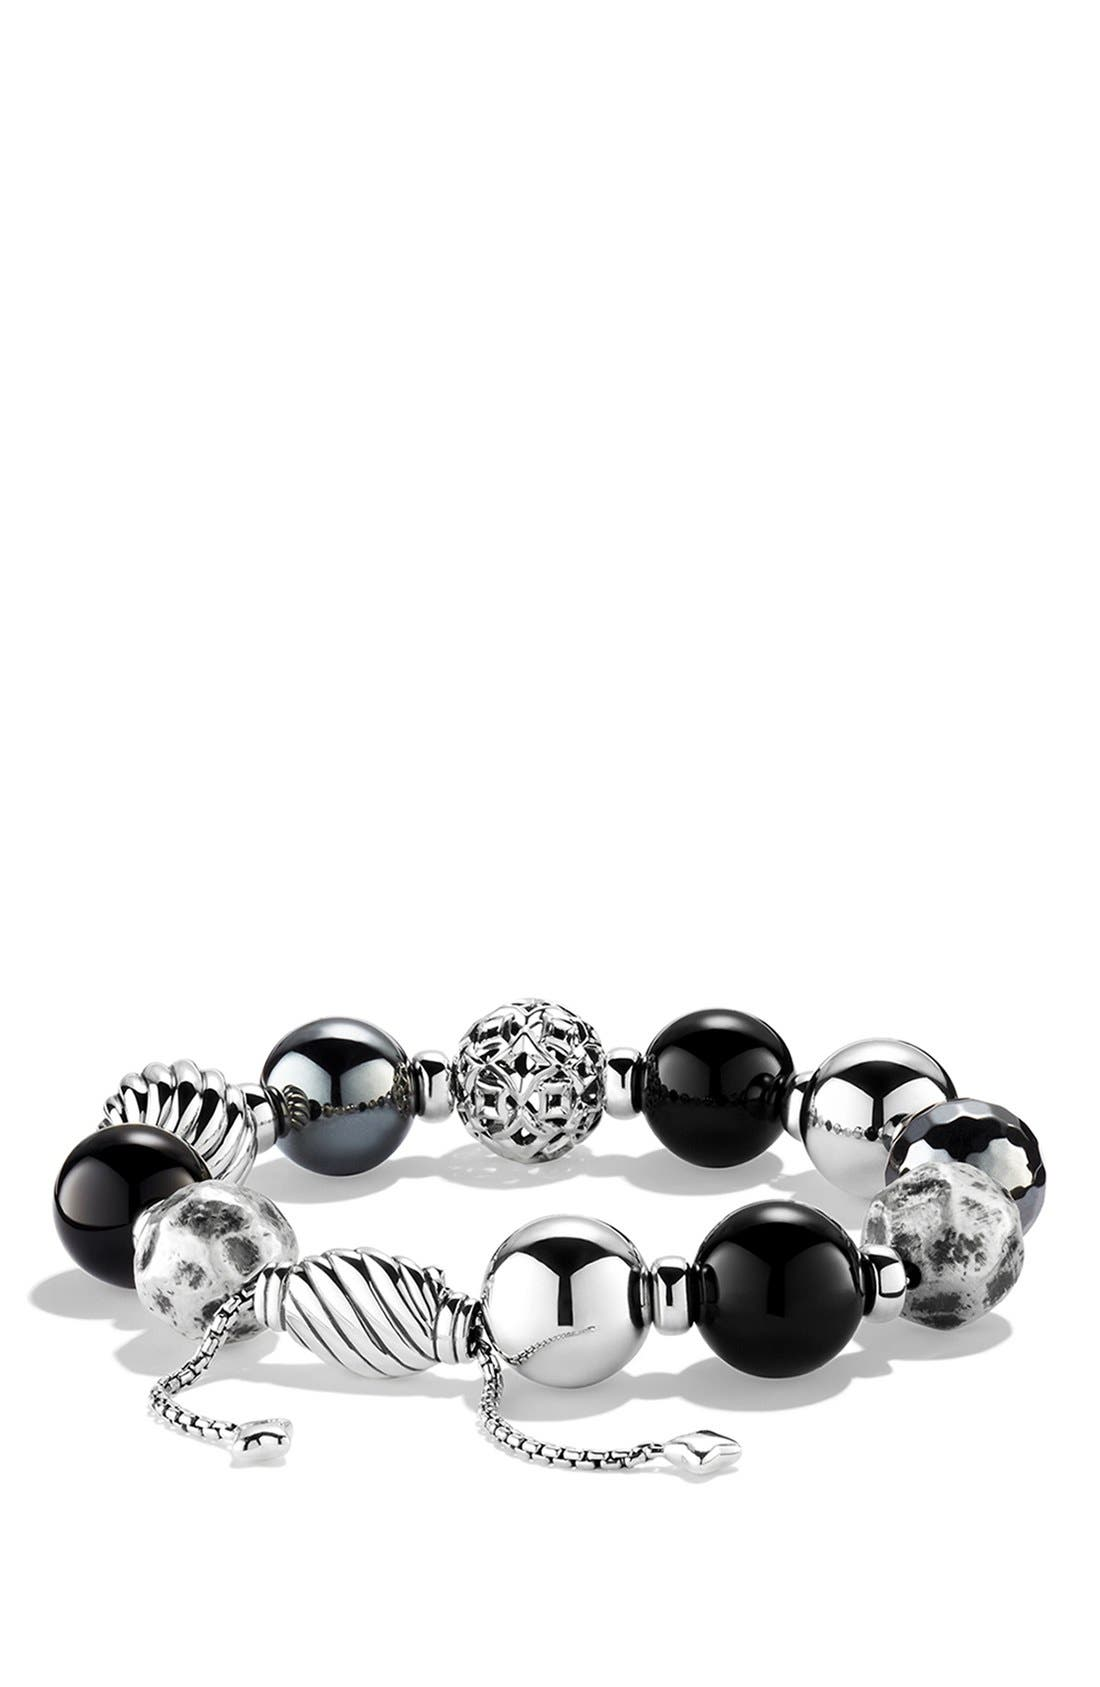 'DY Elements' Bracelet with Black Onyx and Hematine,                             Main thumbnail 1, color,                             001